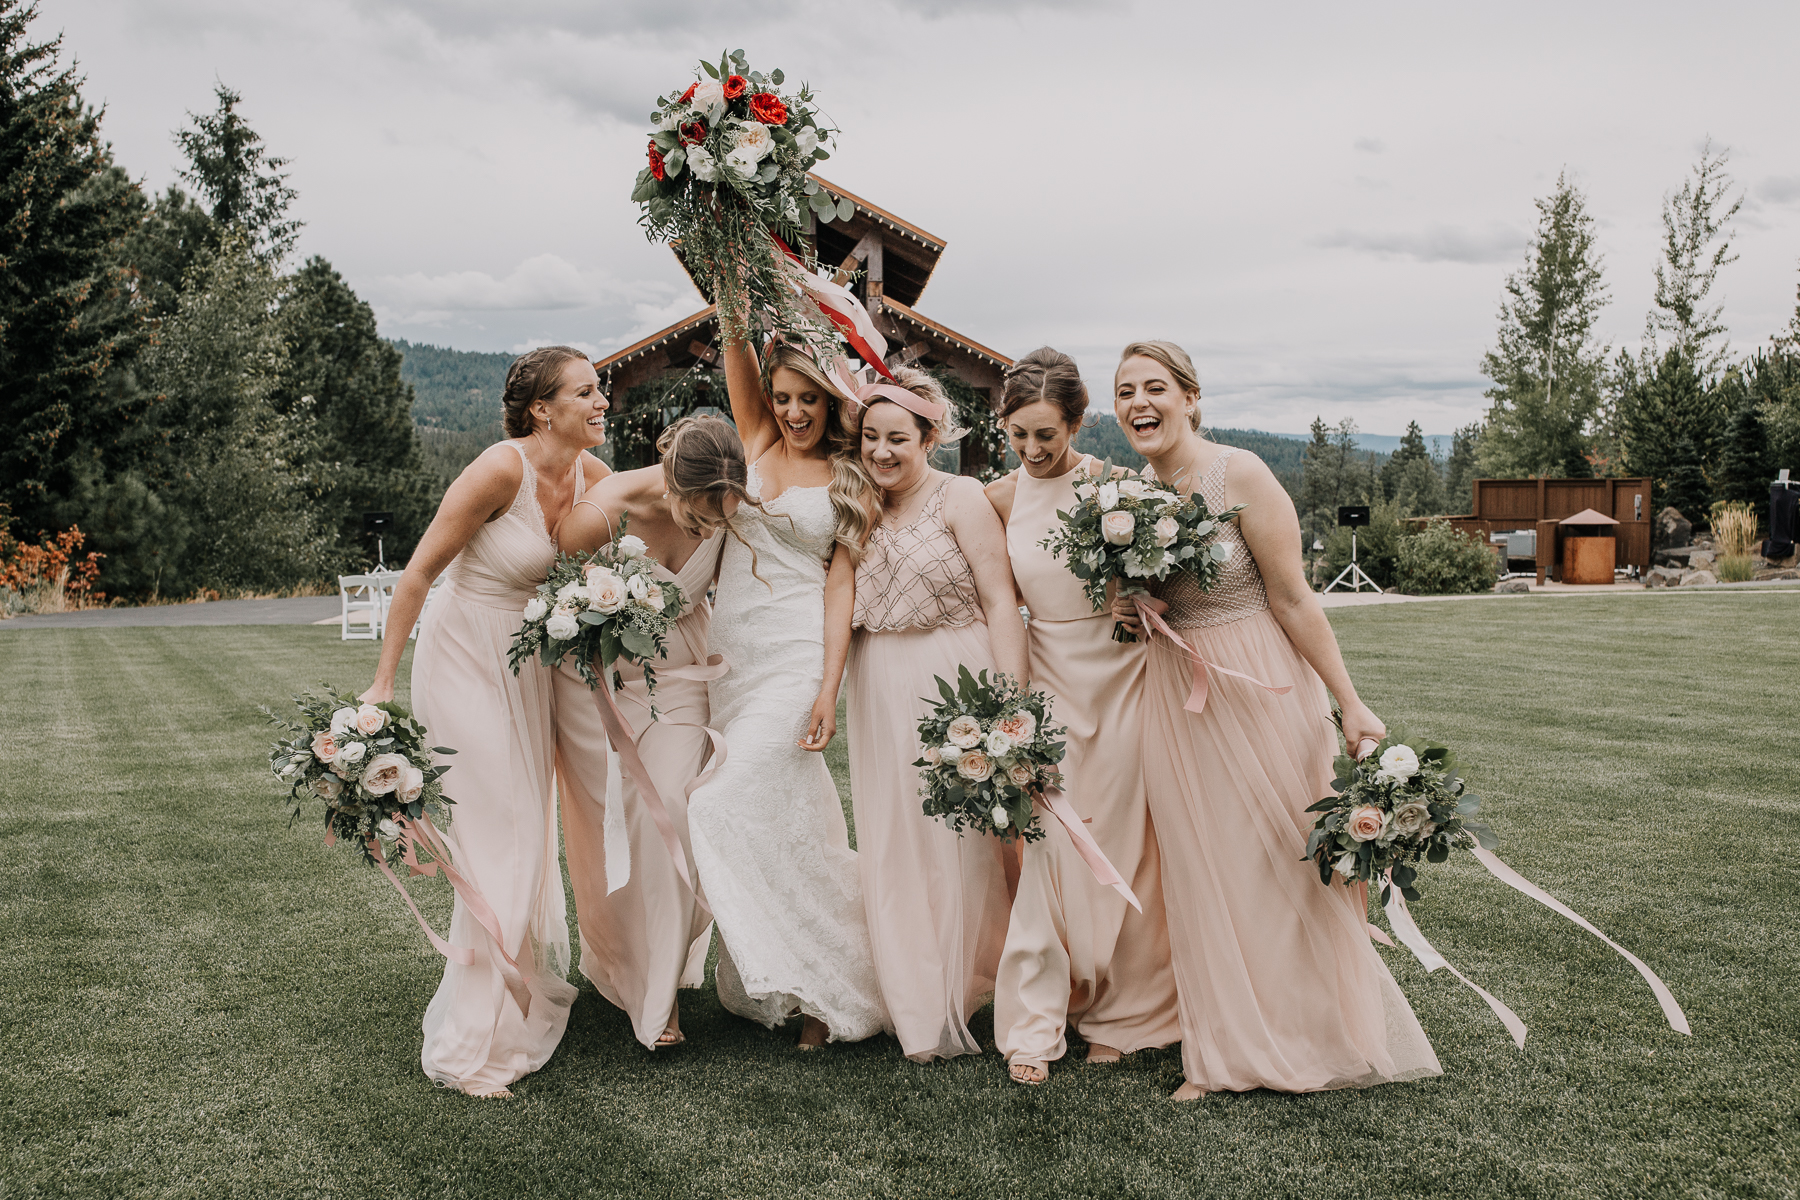 0648Swiftwater Cellars Wedding_Cle Elum Wedding_Montana Wedding Photographer_Kat & Kyle_September 15, 2018-145.jpg